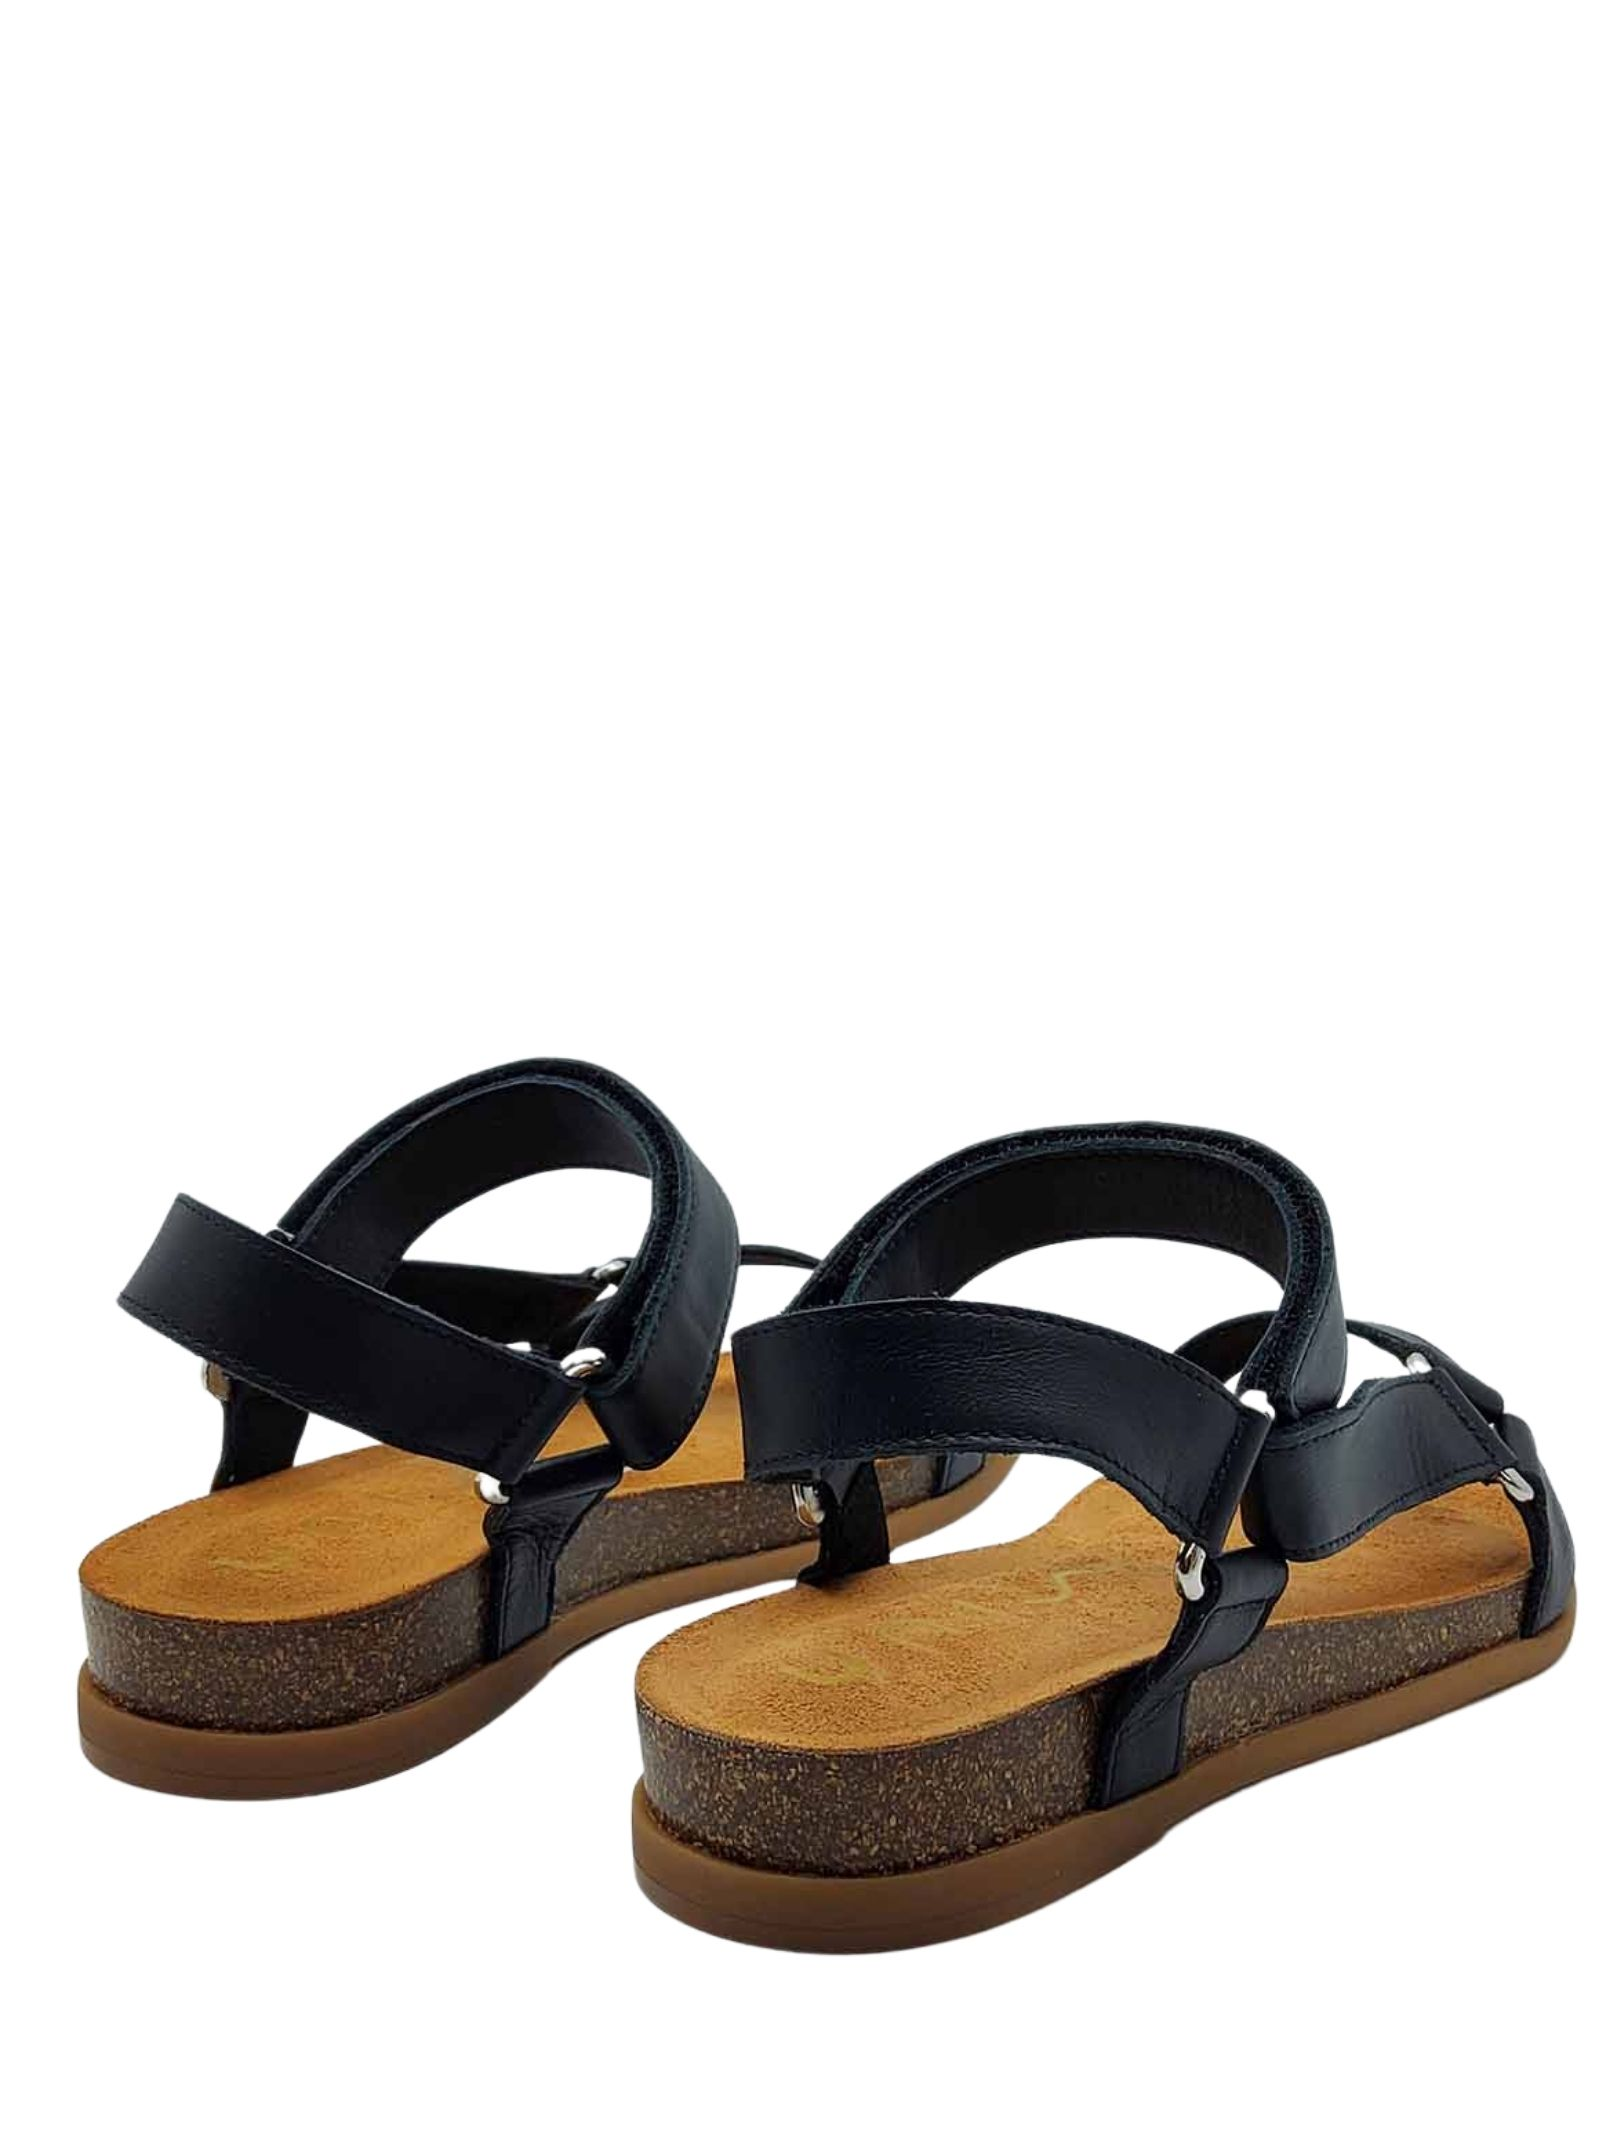 Women's Shoes Flat Sandals in Black Leather with Silver Hooks Strap with Velcro Closure Unisa | Sandals | COLIRO001